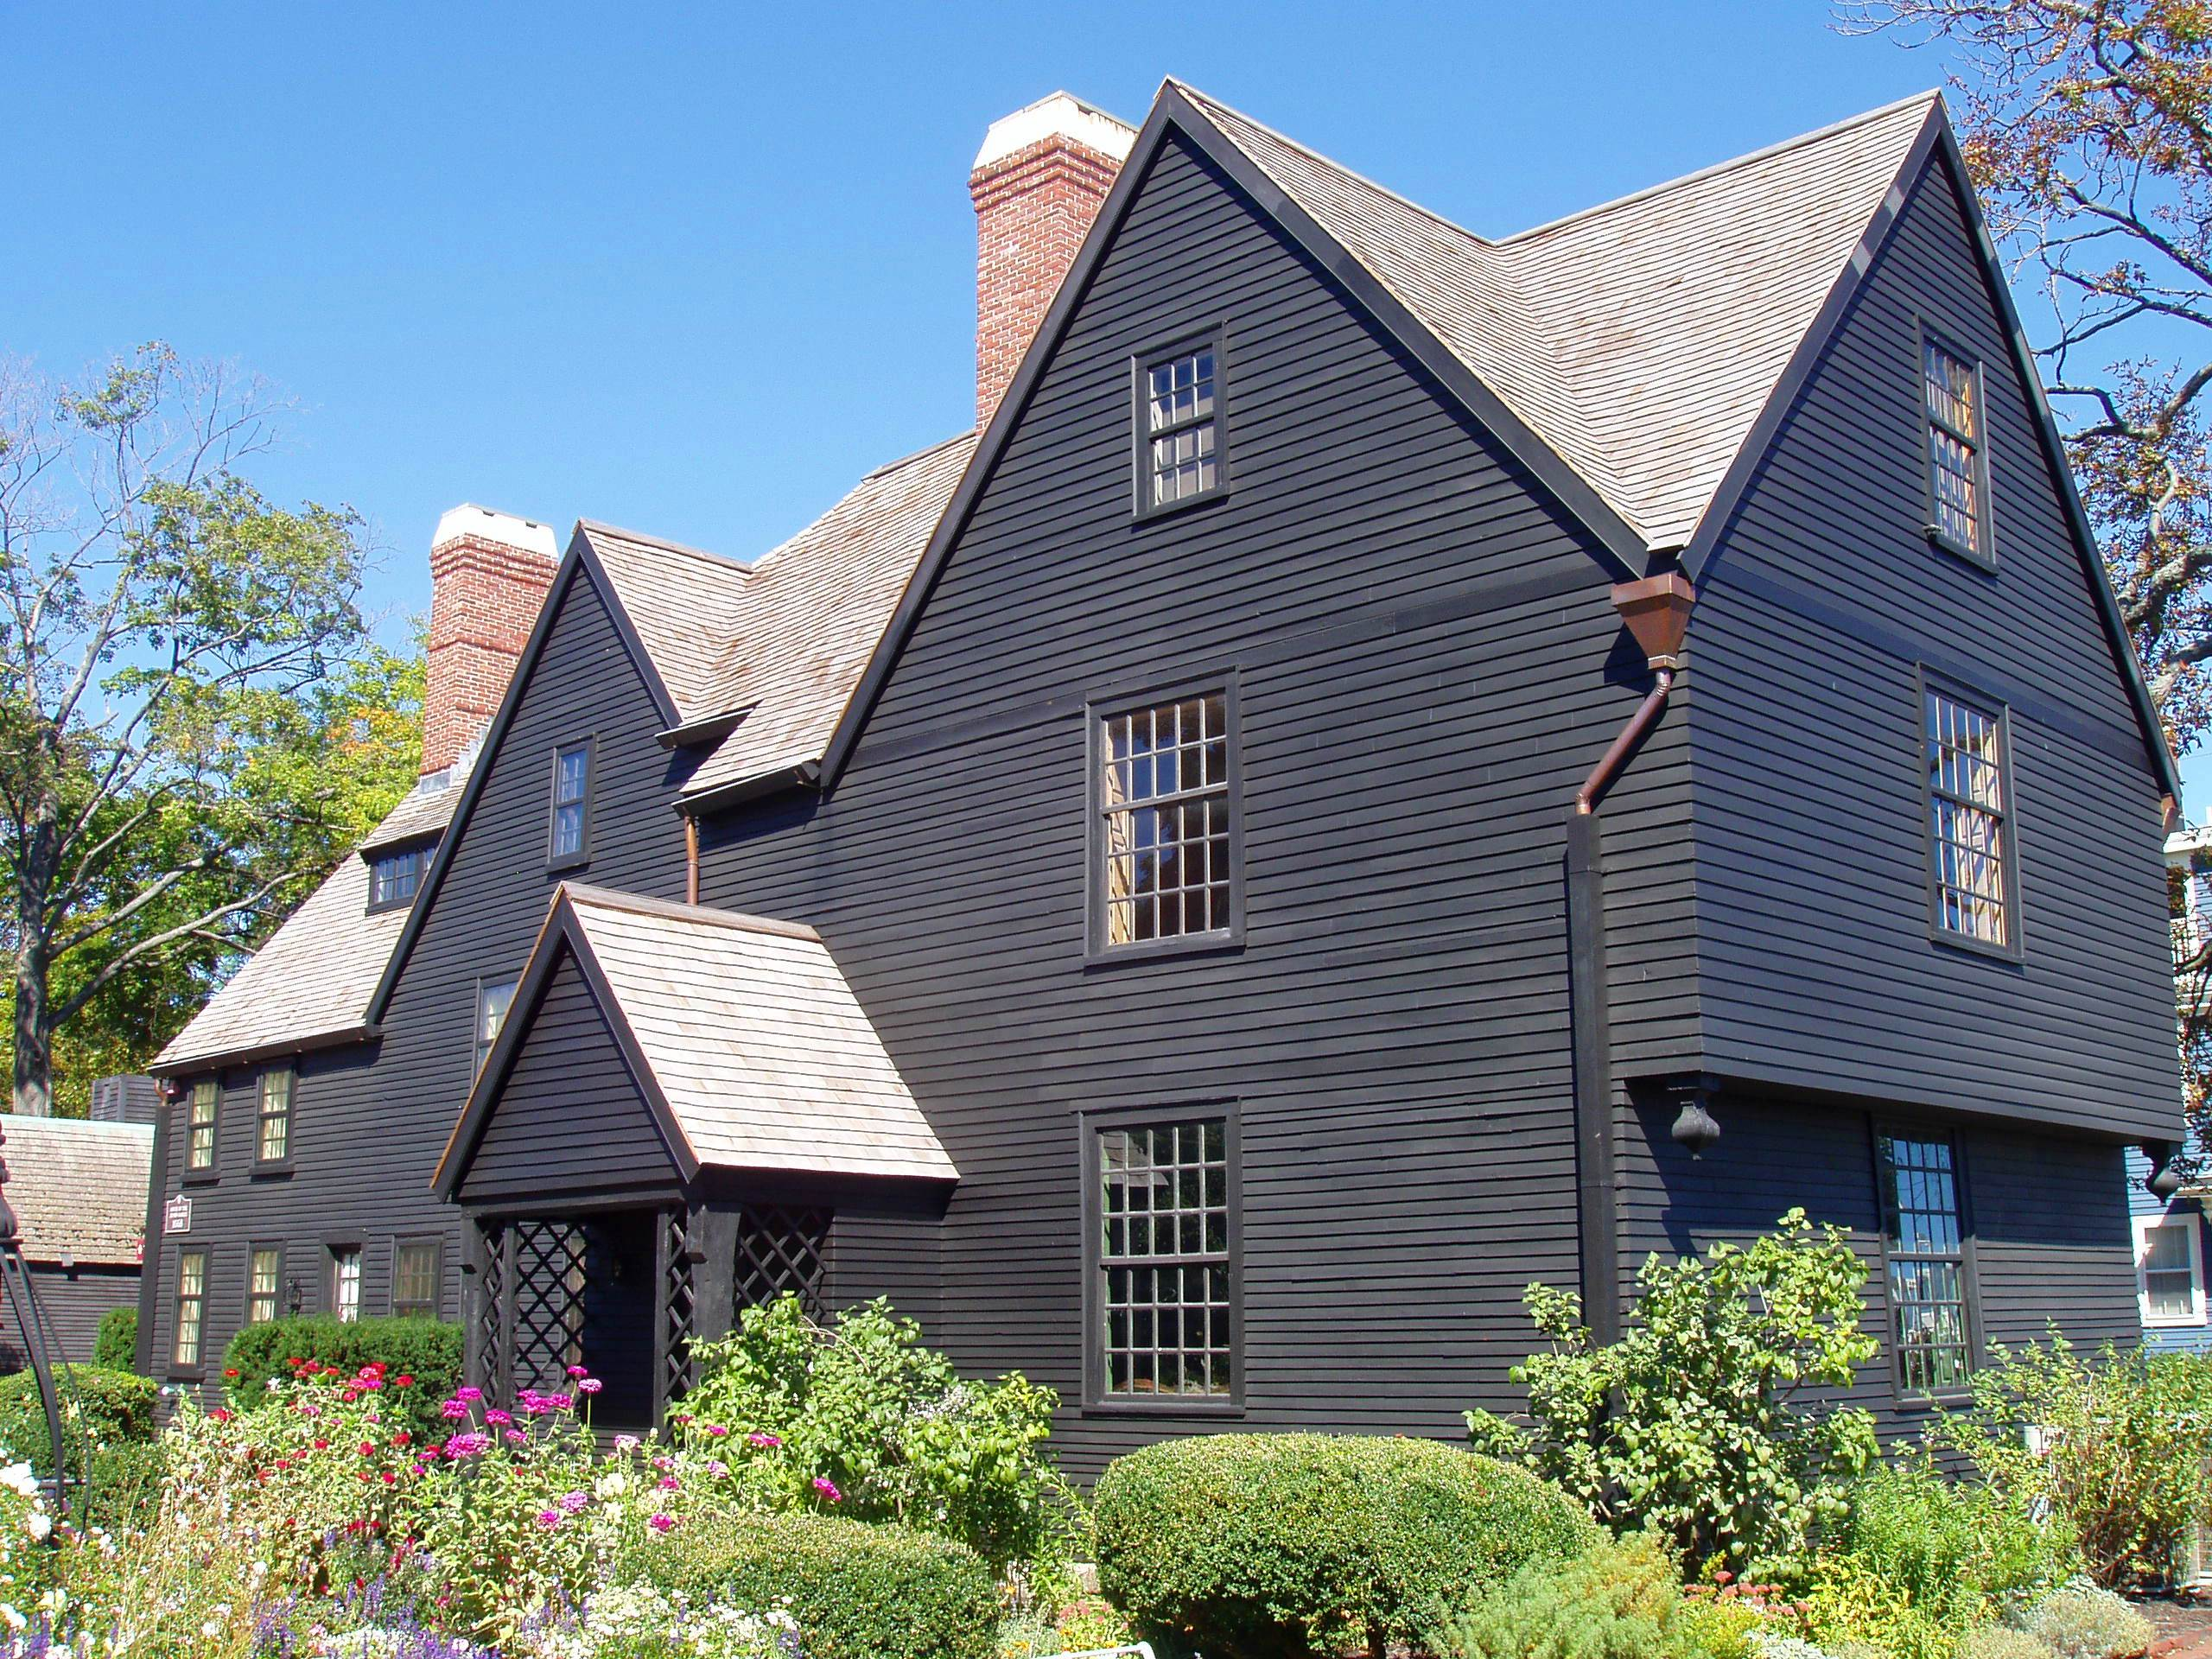 Datei:House of the Seven Gables (front angle) - Salem, Massachusetts.